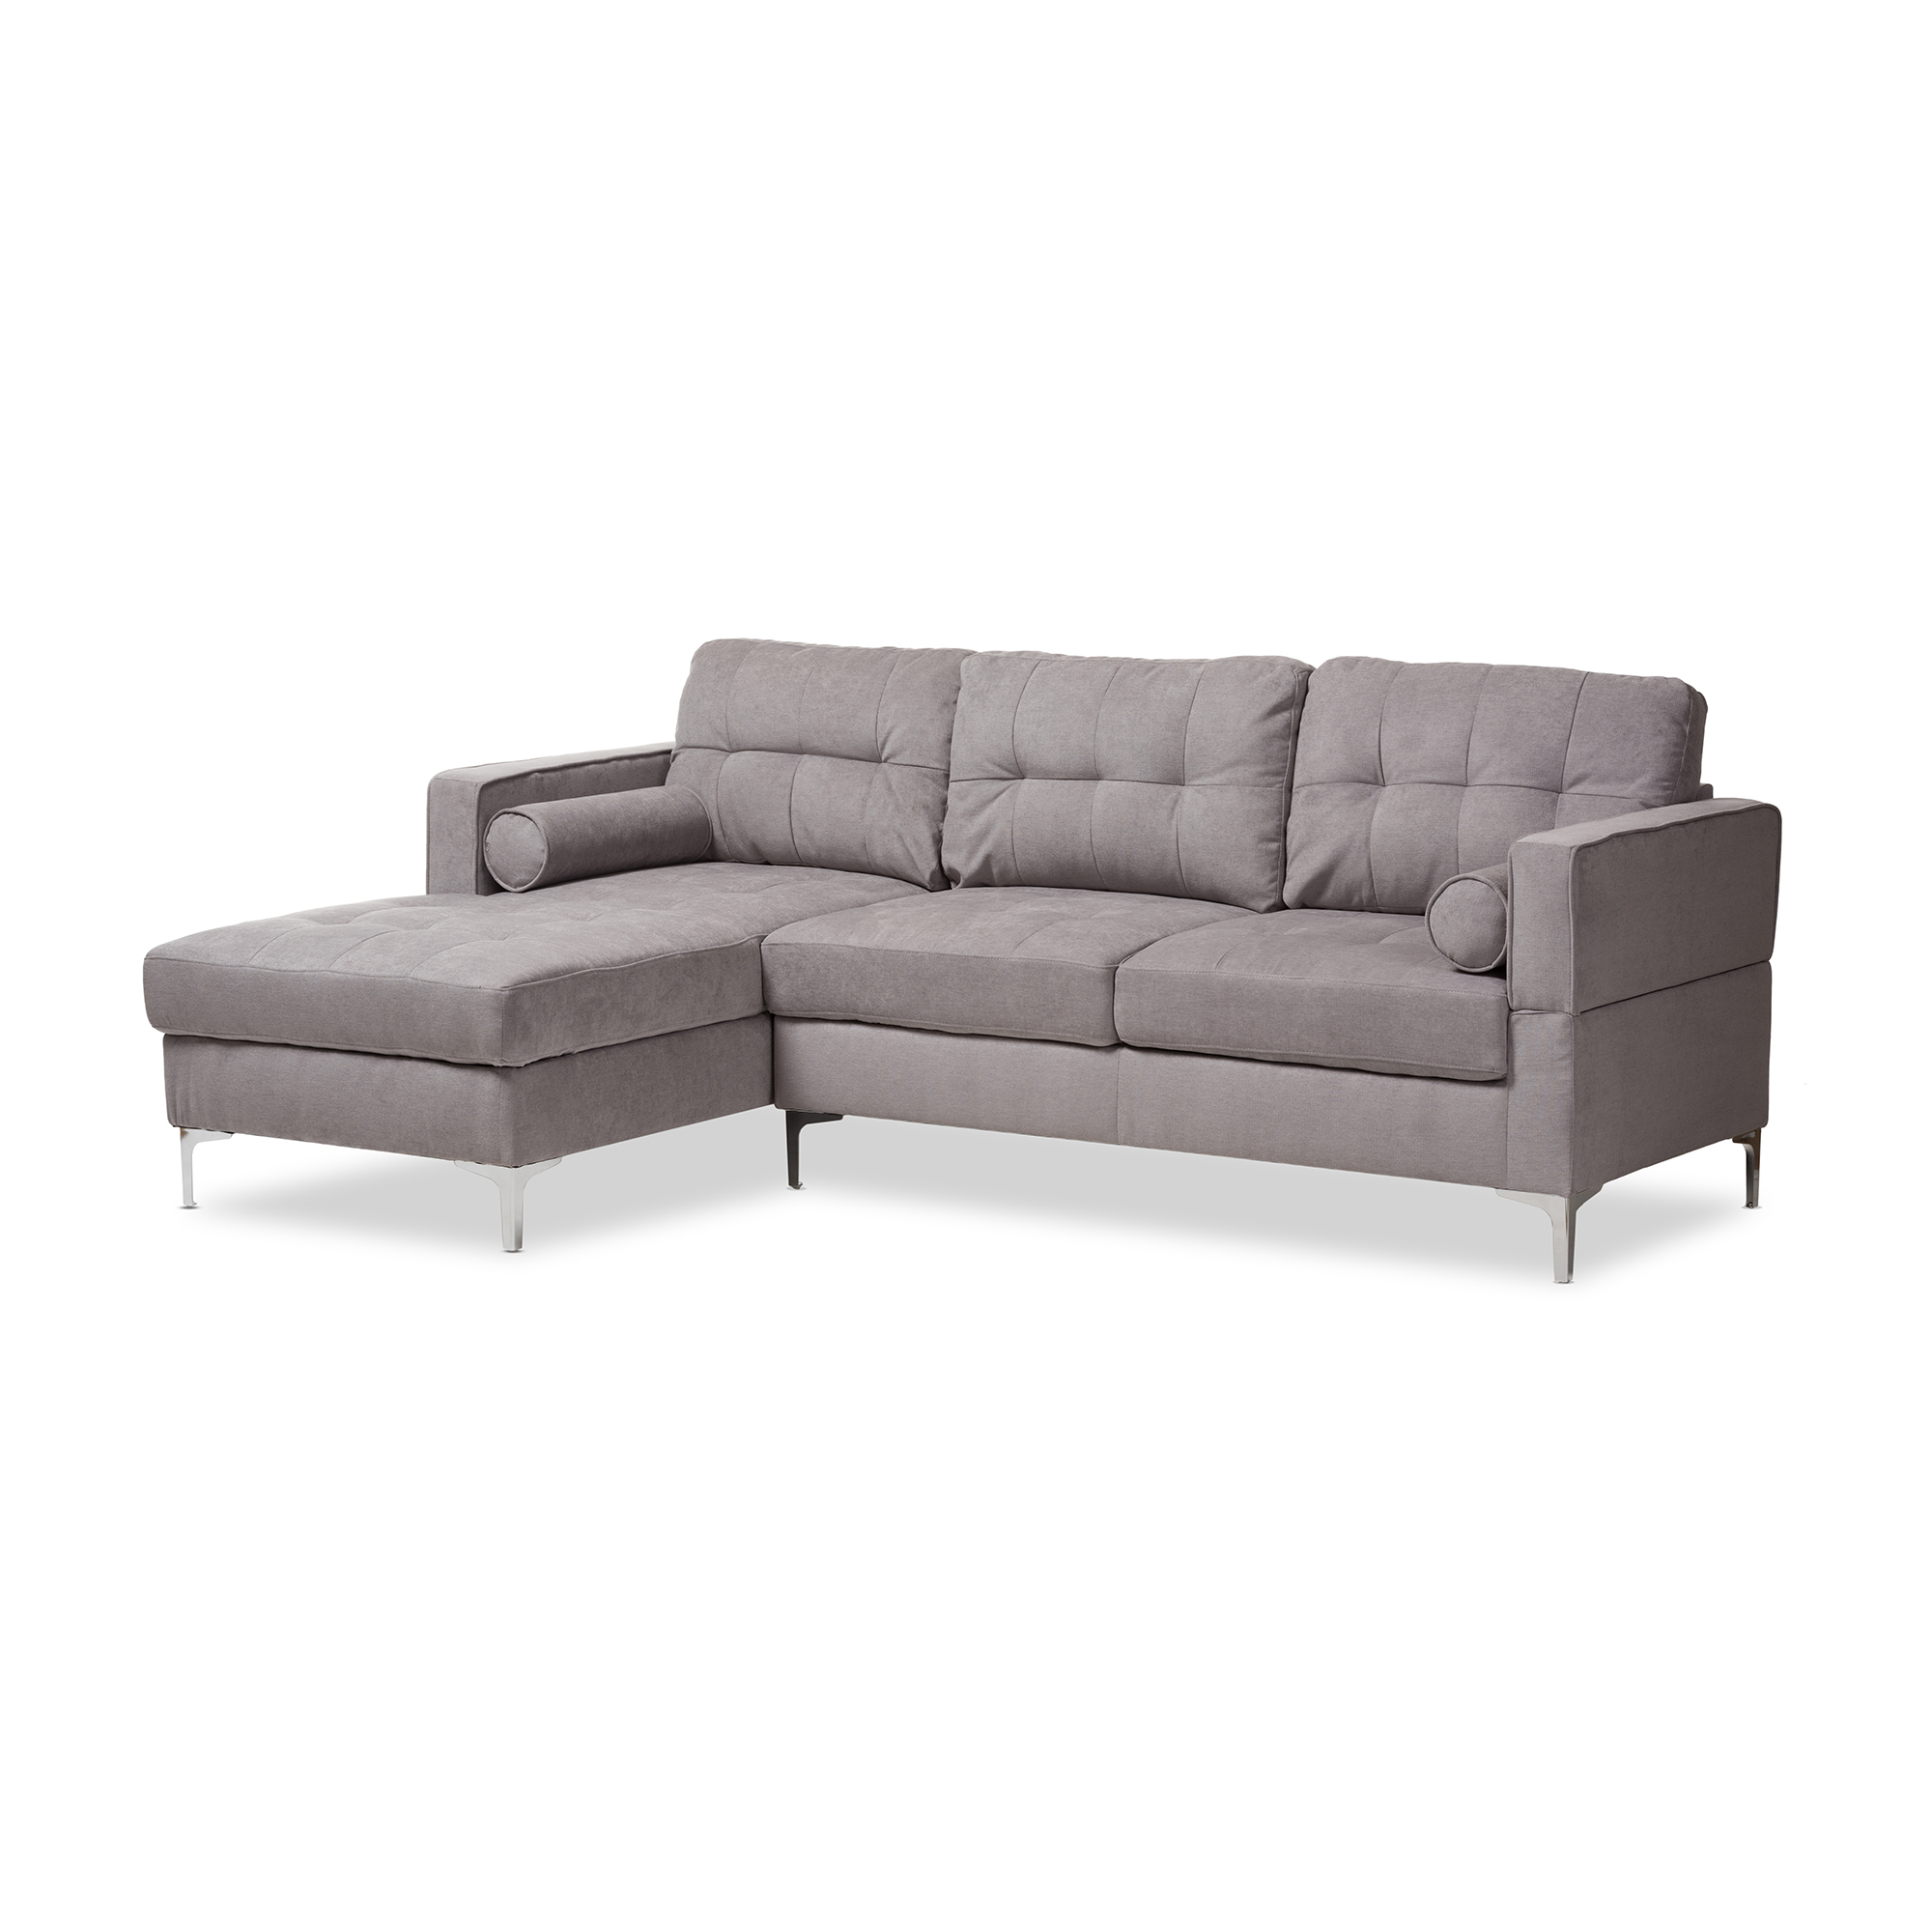 light gray fabric sectional sofa red tufted baxton studio mireille modern and contemporary grey